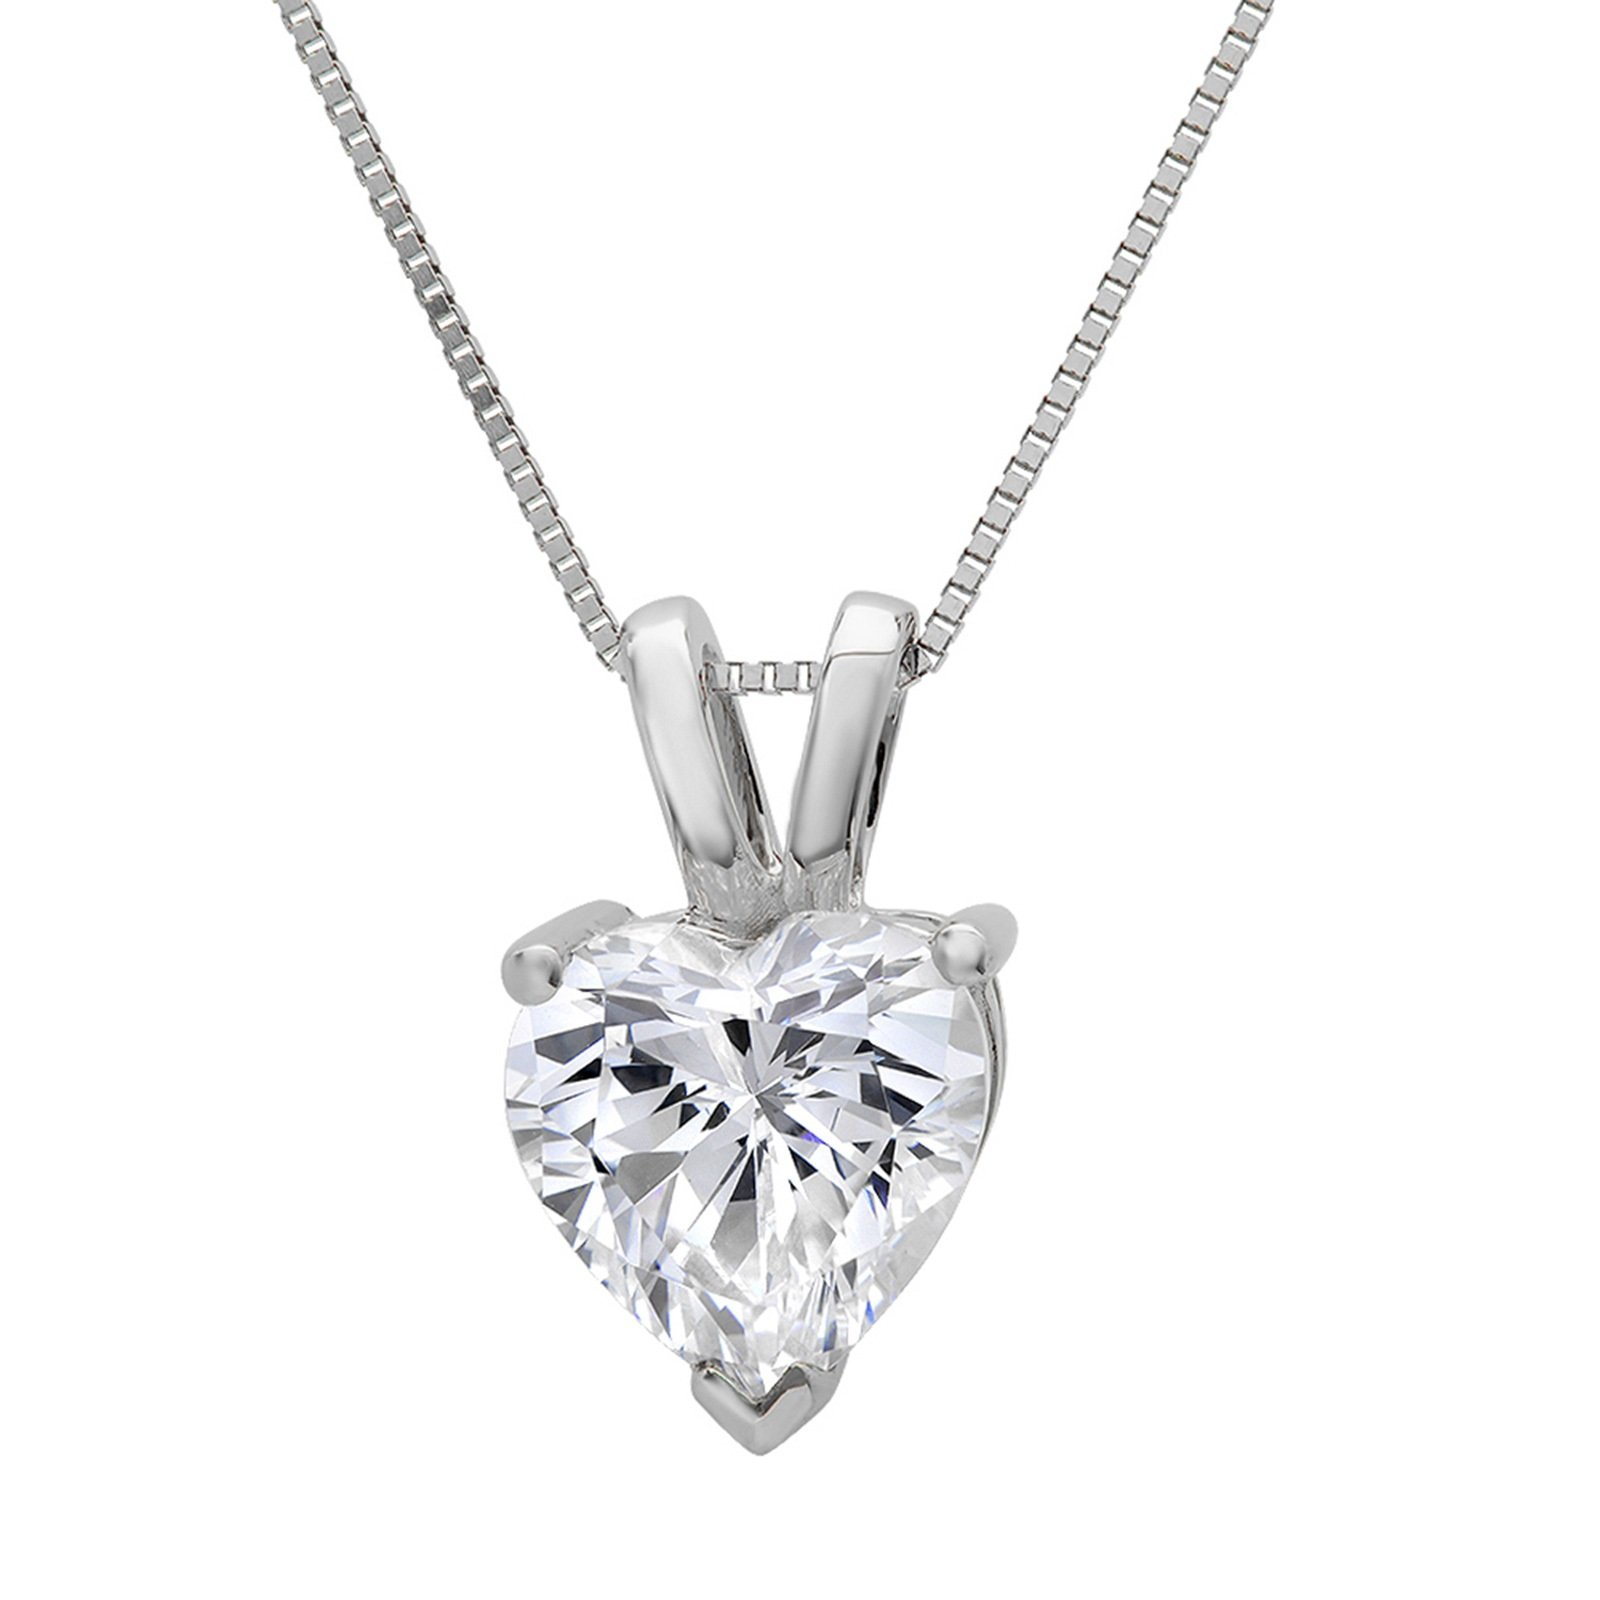 2.05 ct Brilliant Heart Cut Highest Quality Moissanite Solitaire Pendant Necklace With 16'' Gold Chain box Solid 14k White Gold, Clara Pucci